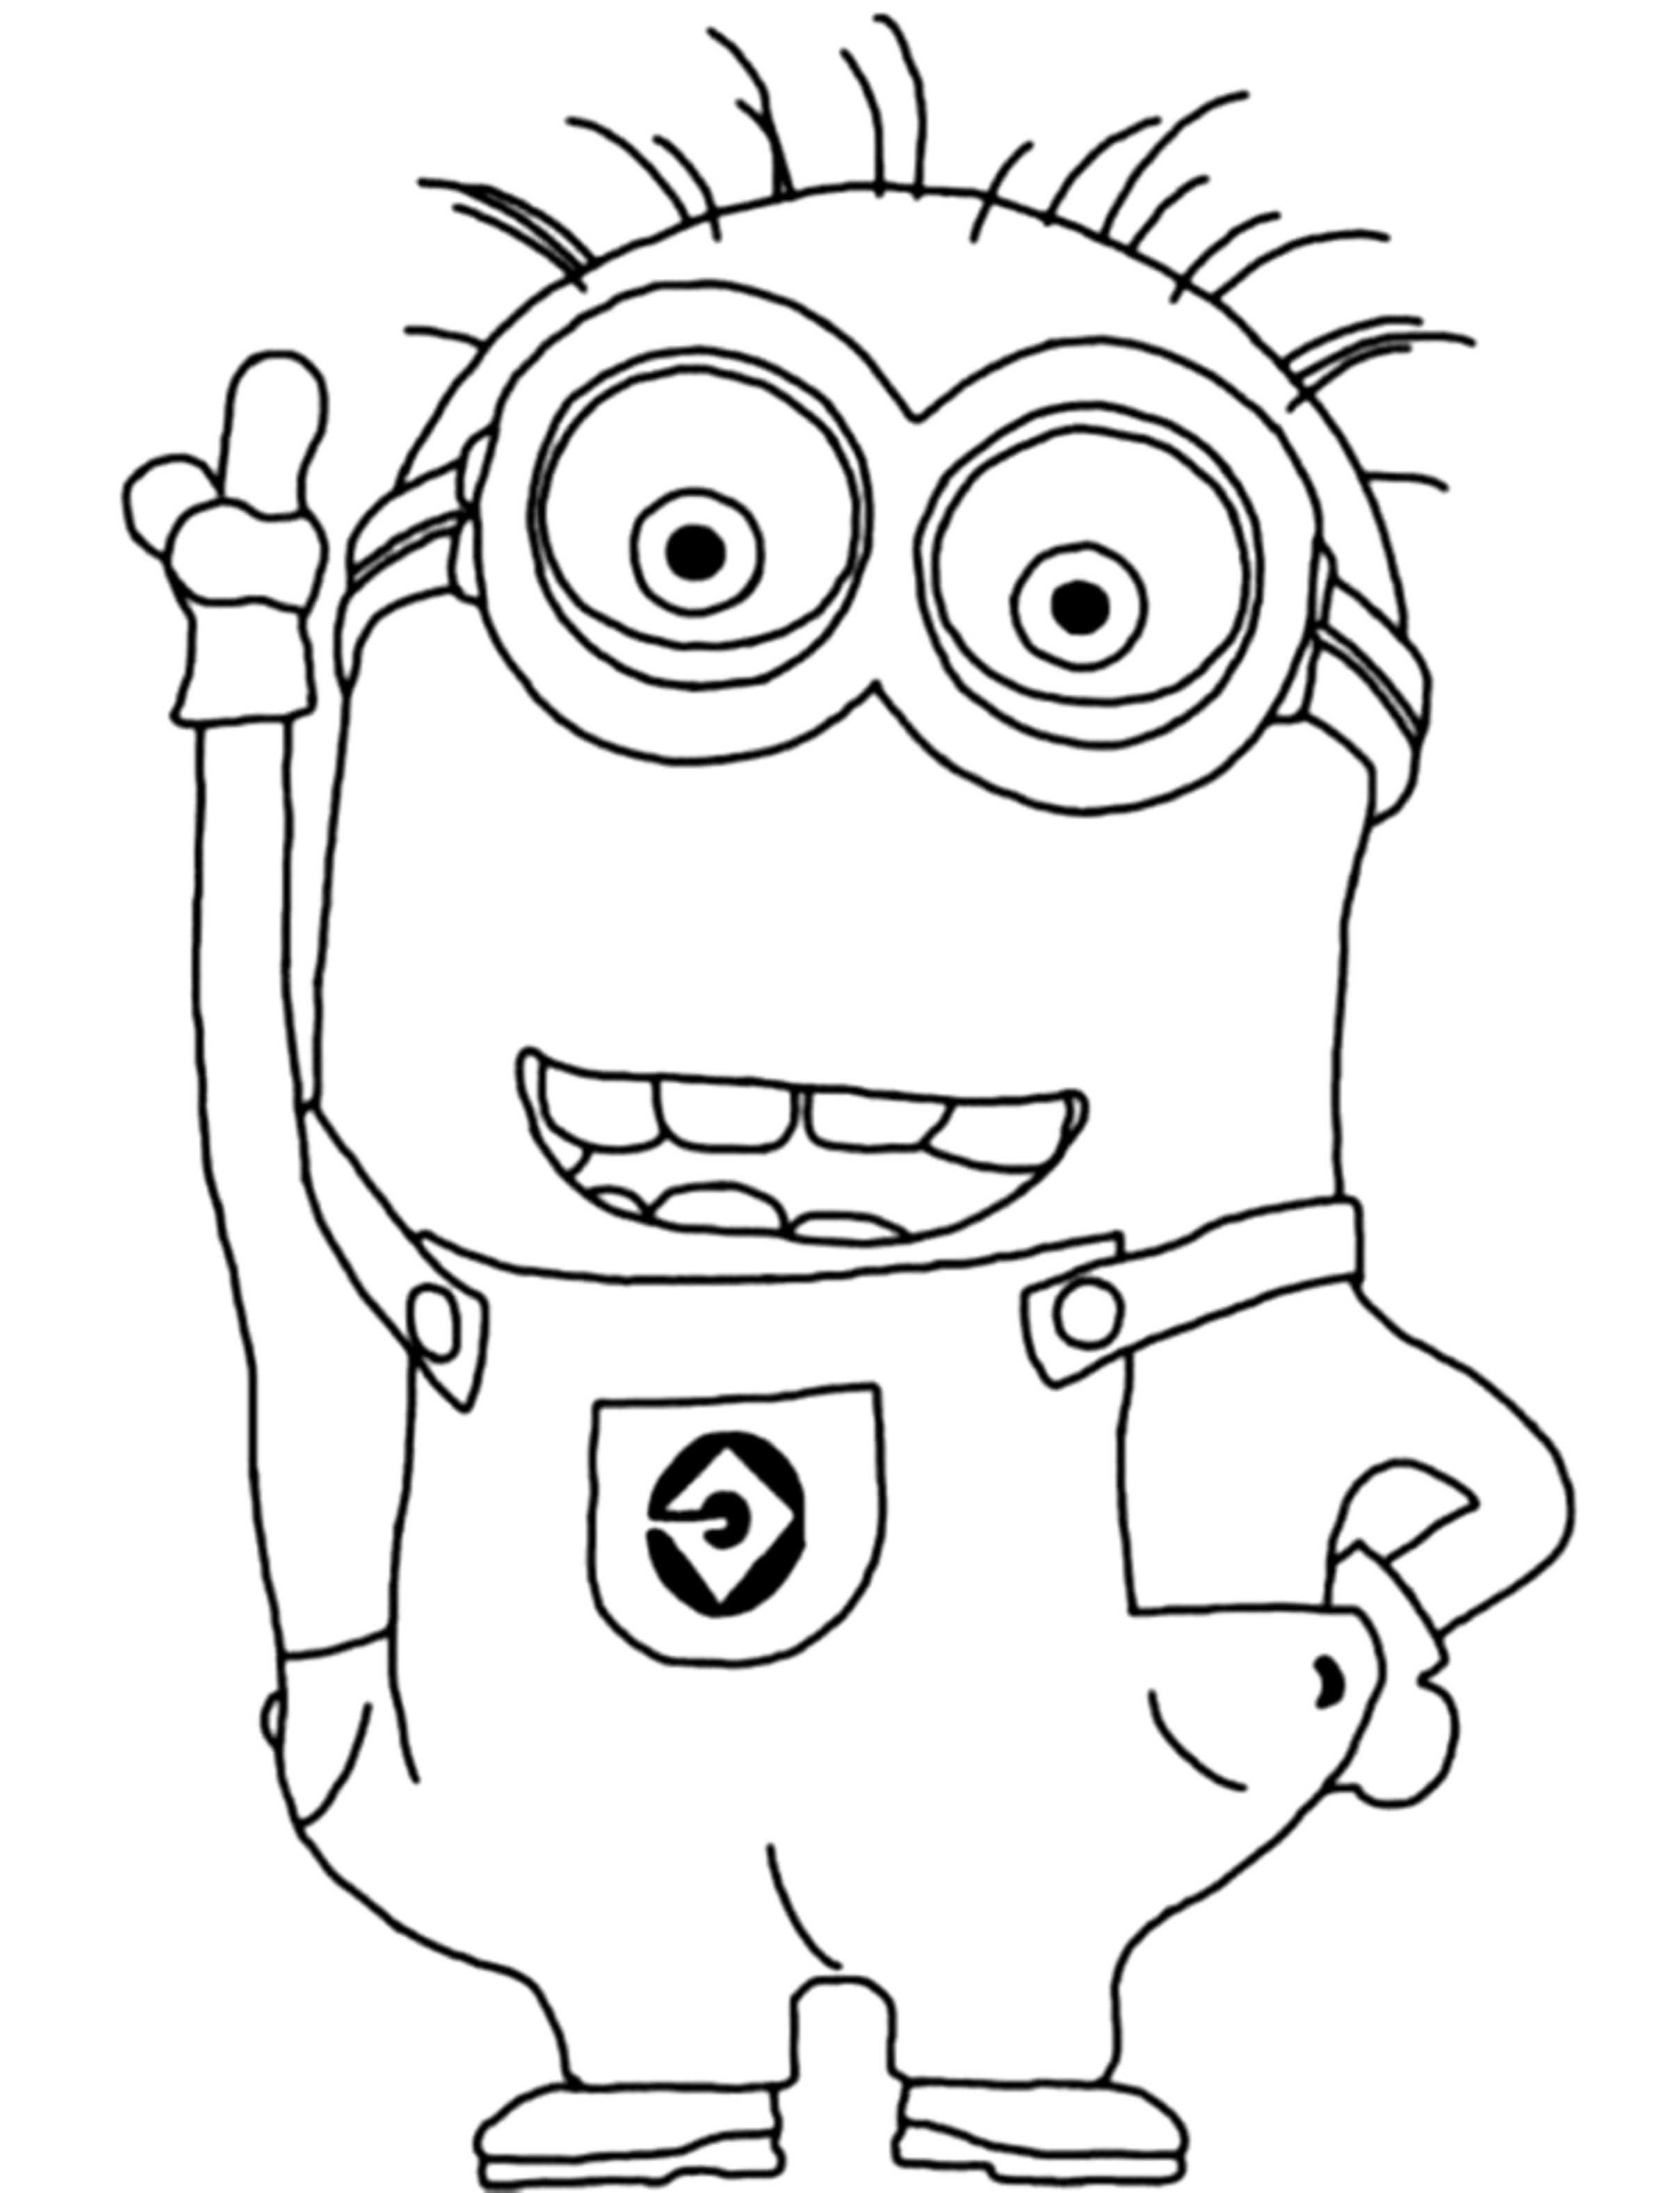 Despicable Me Coloring Pages Minions Kevin | Kids Colouring ...